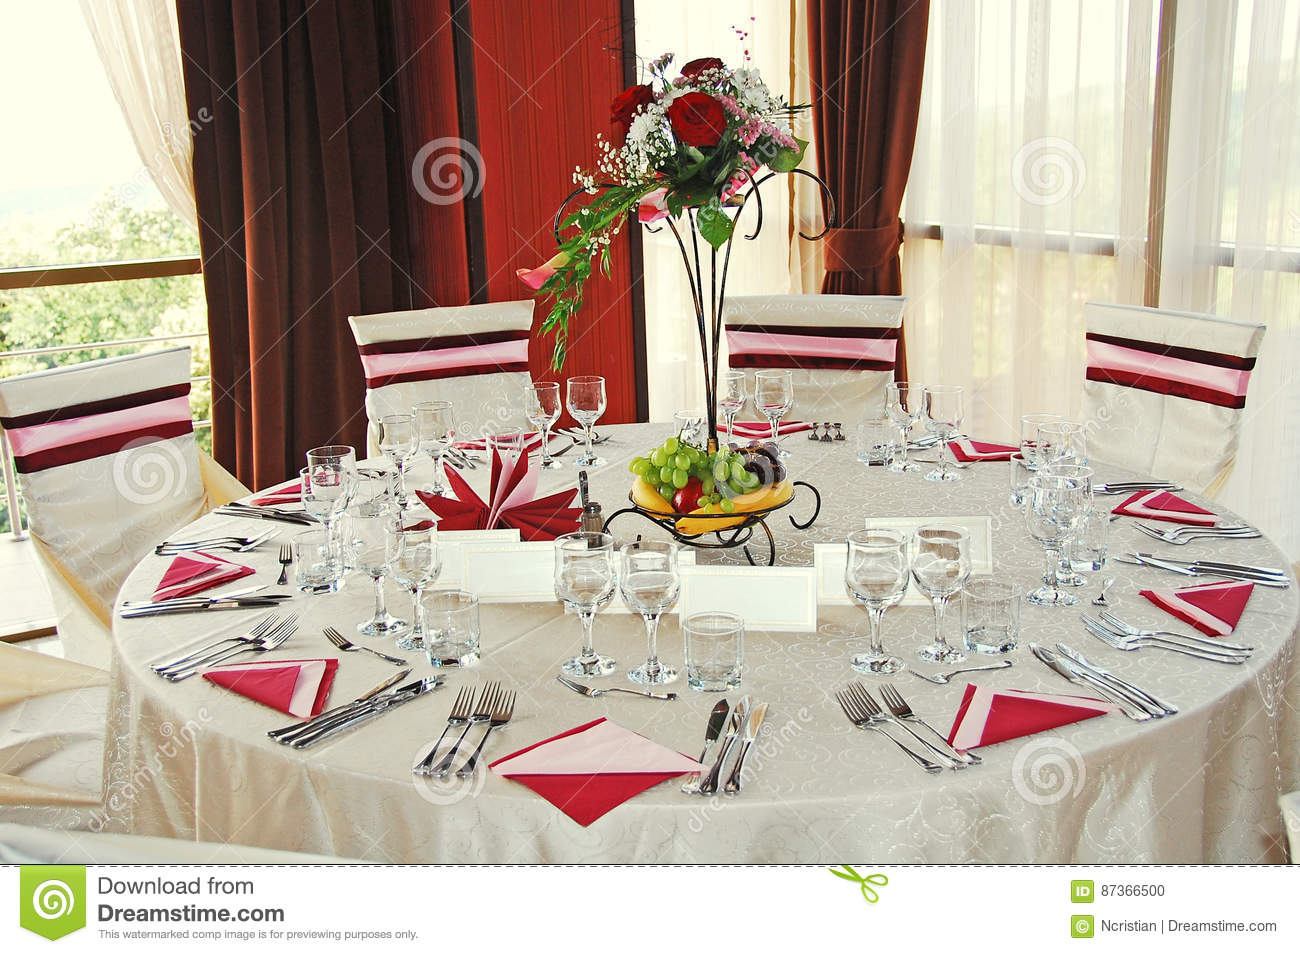 table romantique de mariage restaurant d 39 int rieur. Black Bedroom Furniture Sets. Home Design Ideas